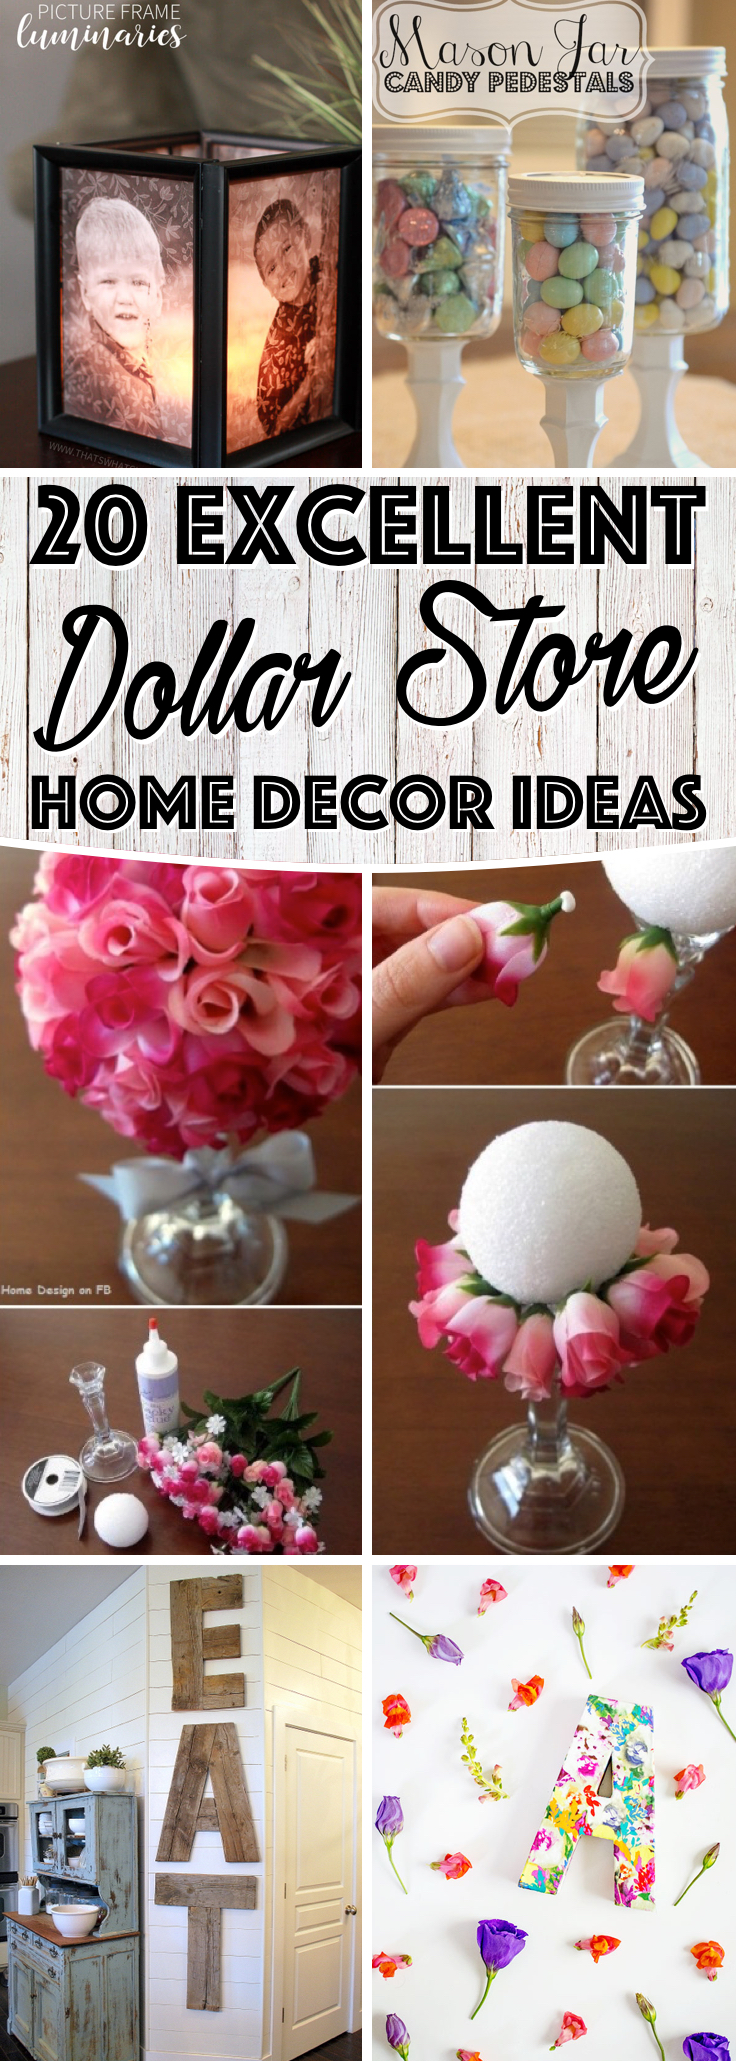 20 excellent dollar store home decor ideas for Store for home decor